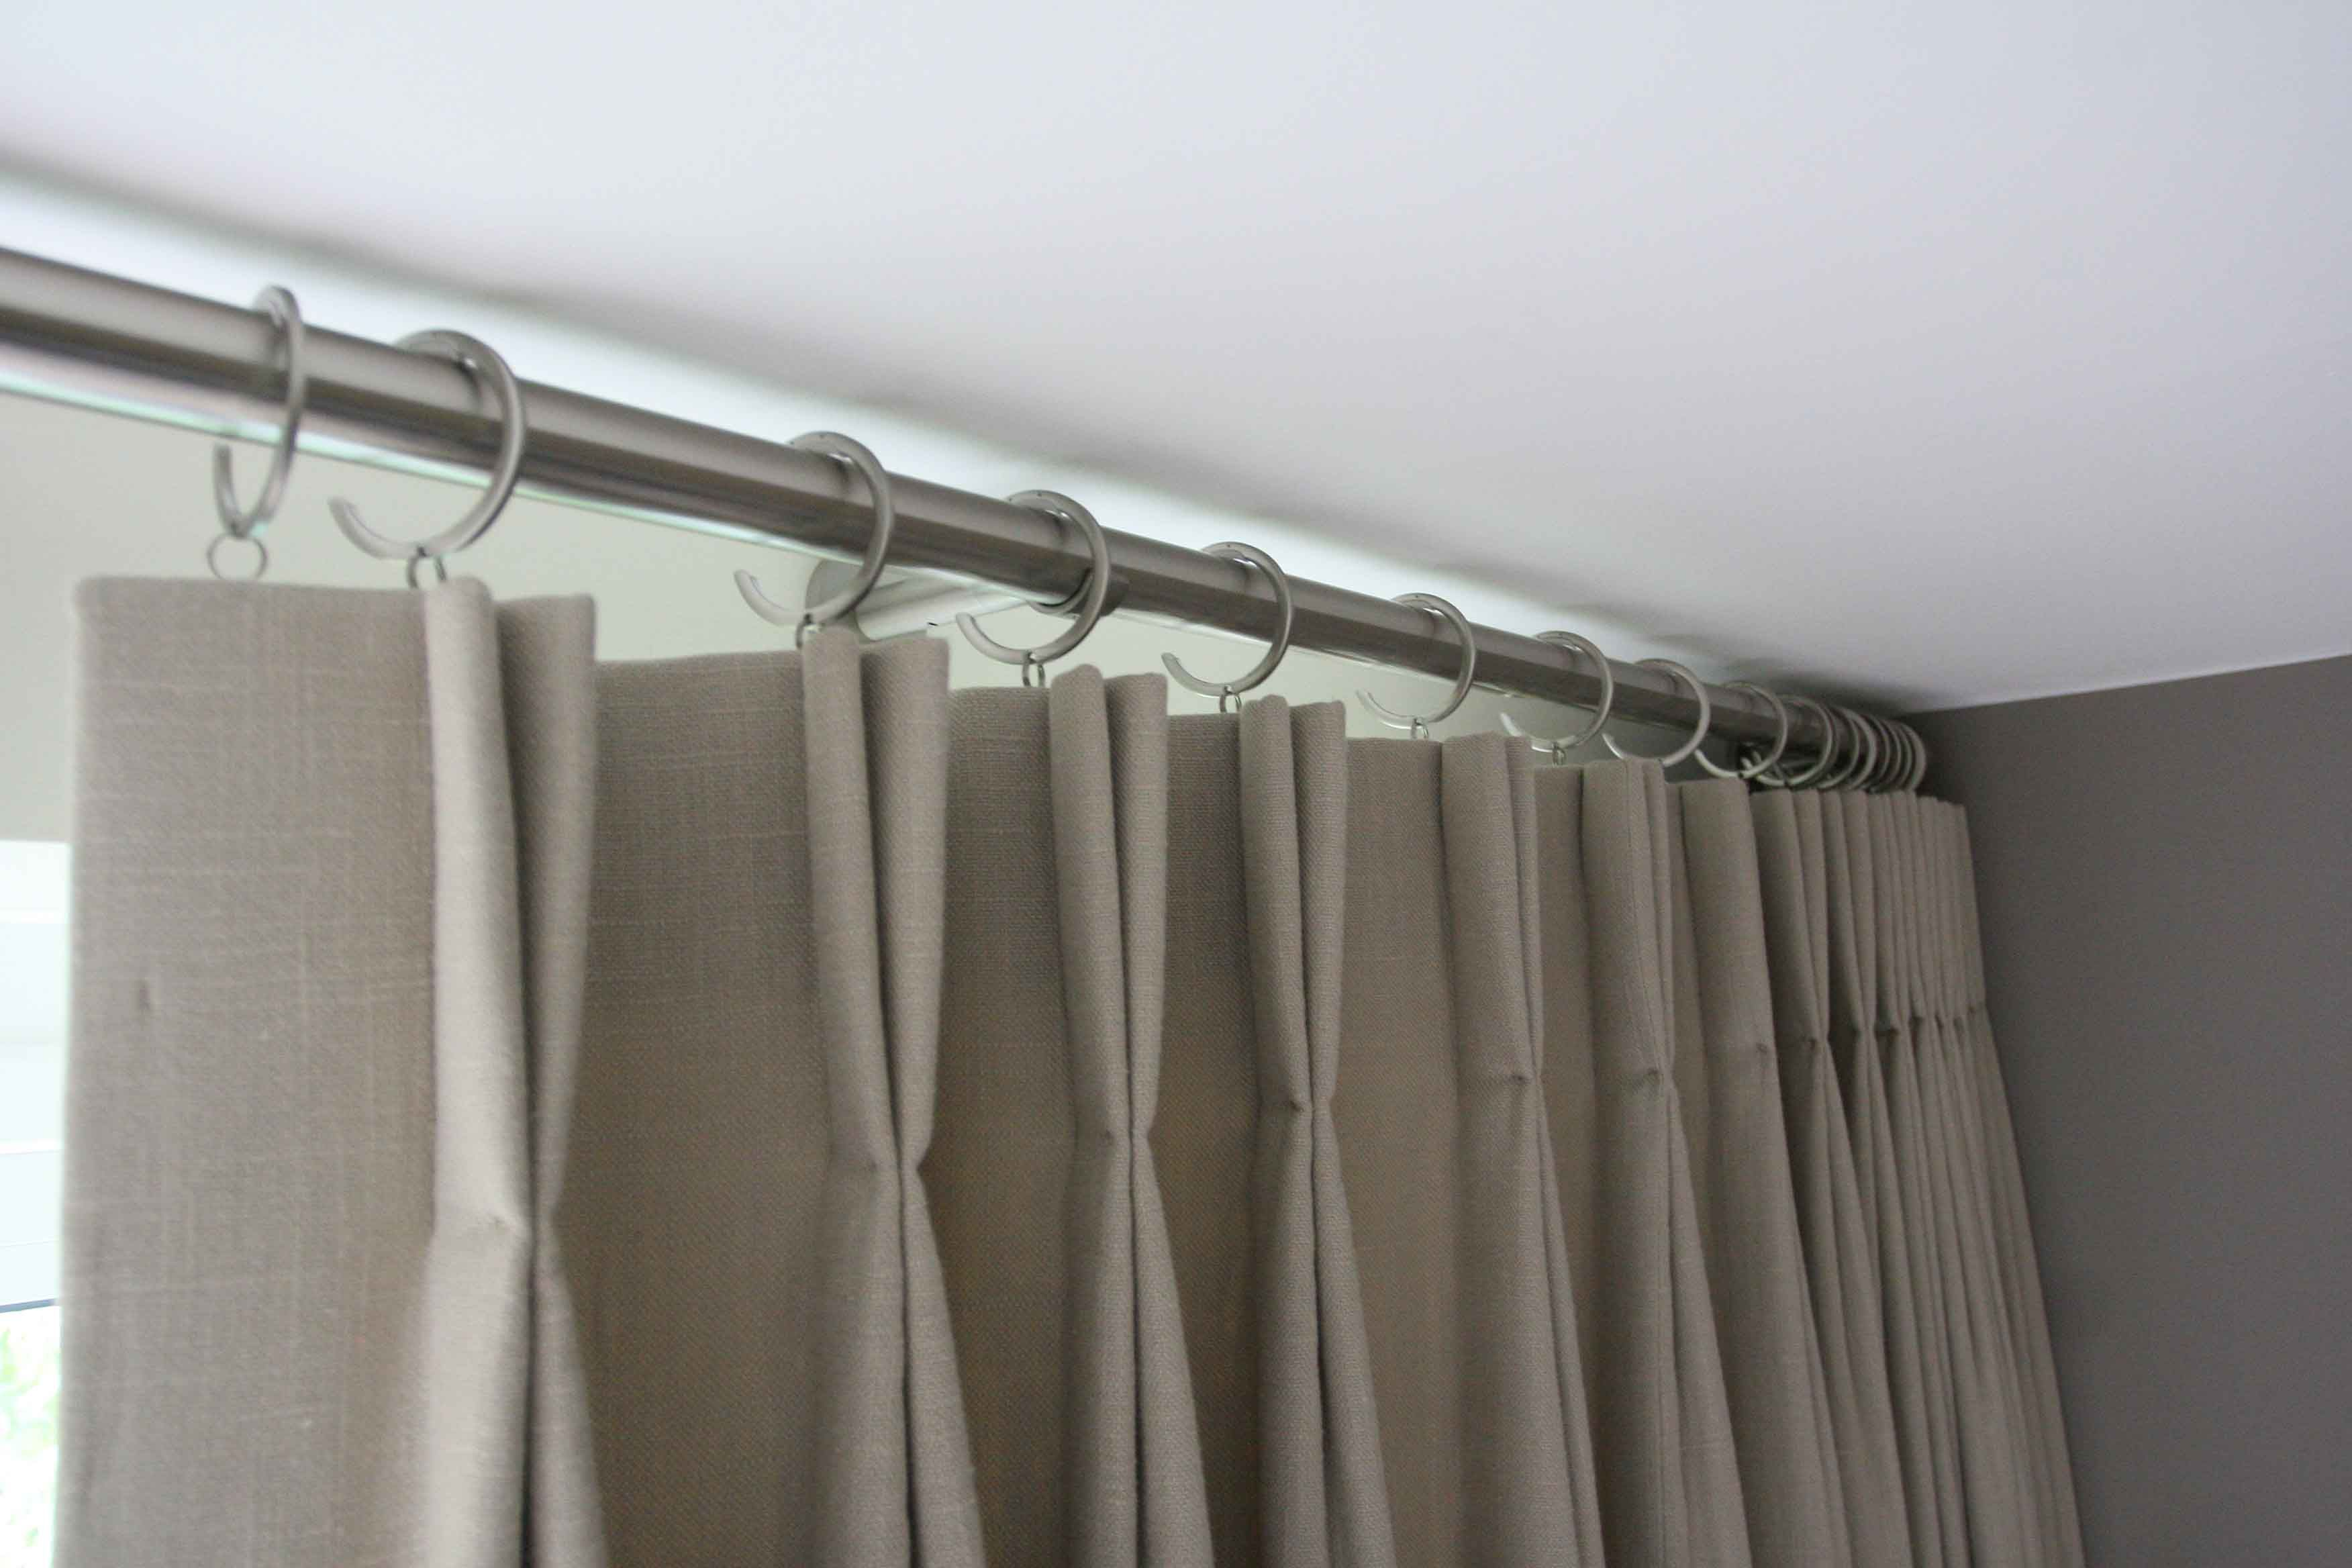 Pinch Pleat Drapes: Double Pinch Pleats Are A Little More Contemporary Than